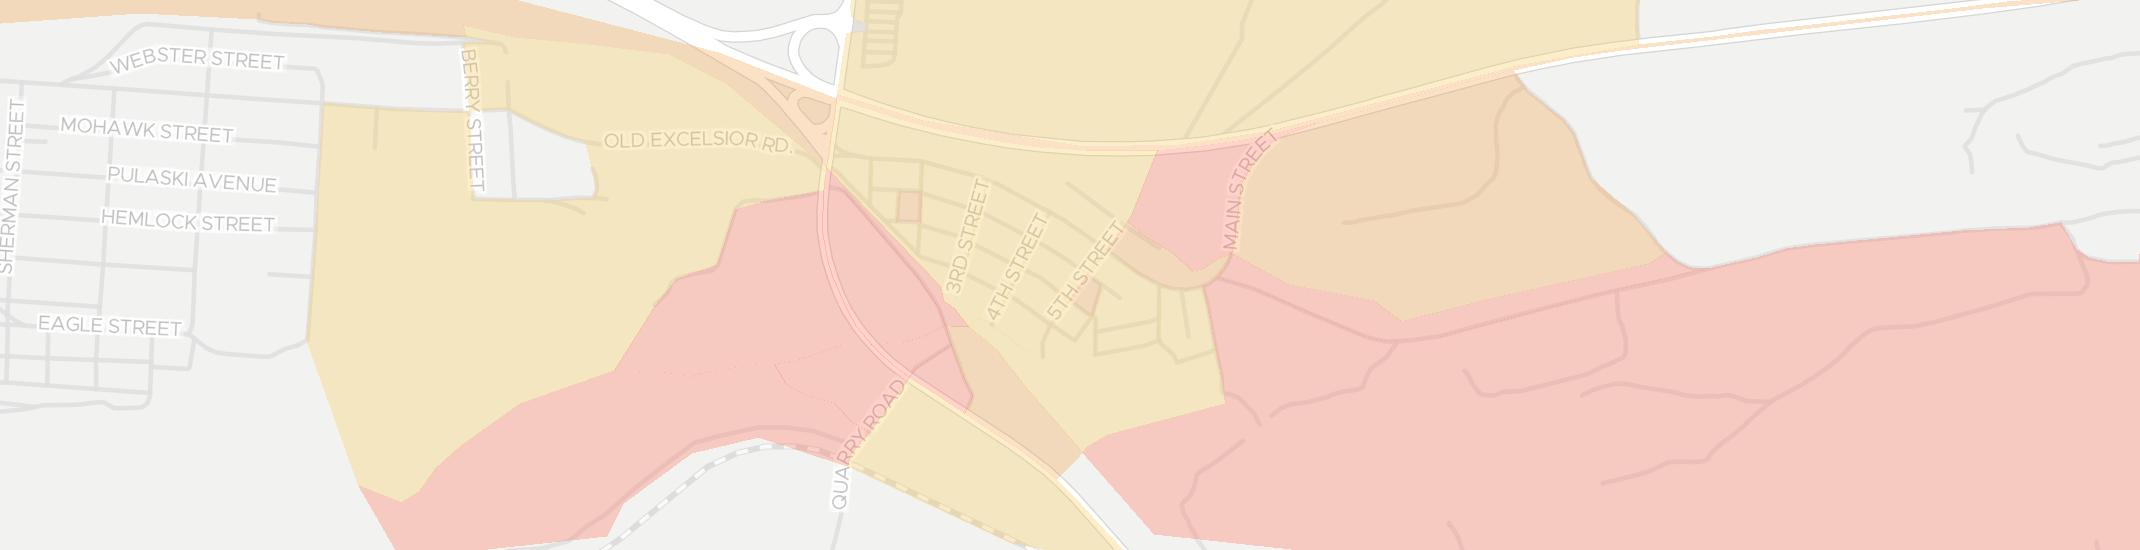 Ranshaw Internet Competition Map. Click for interactive map.